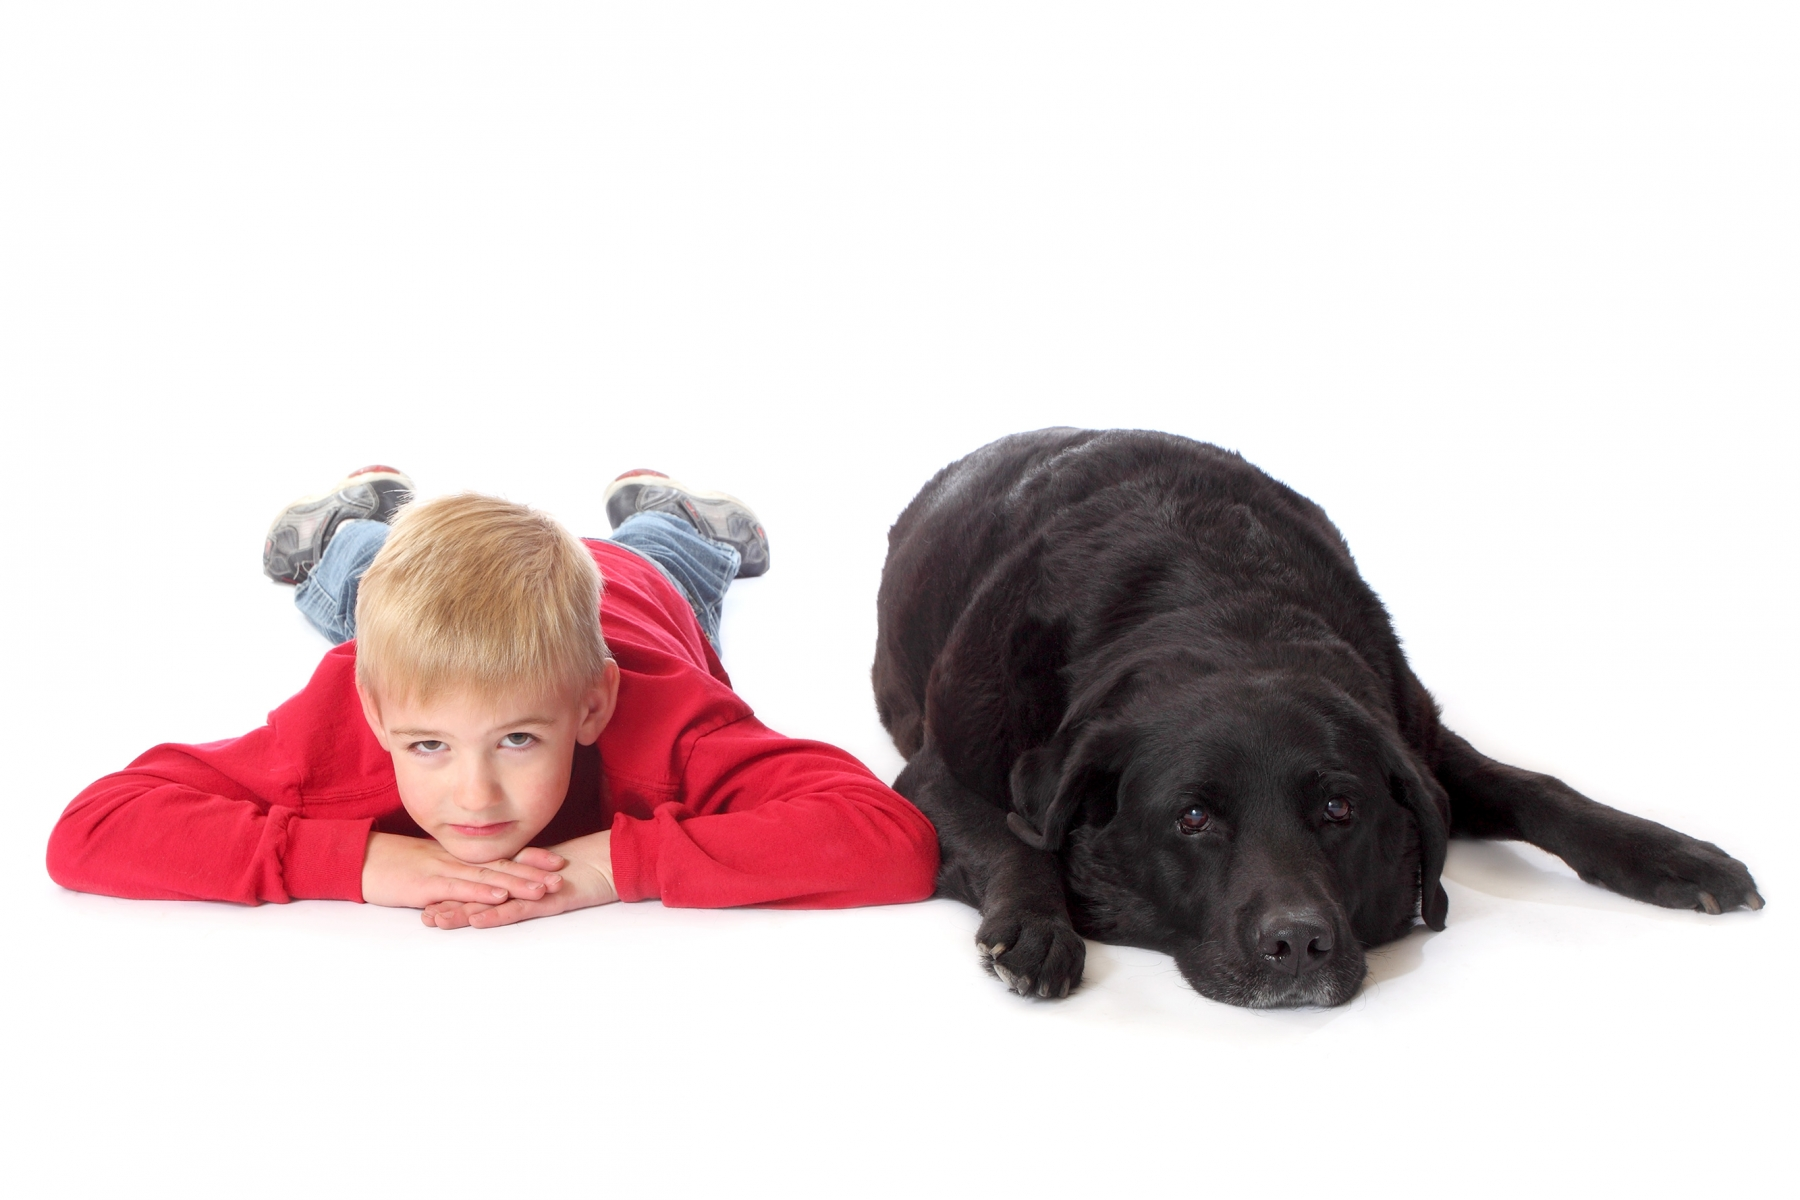 A boy and his dog 2